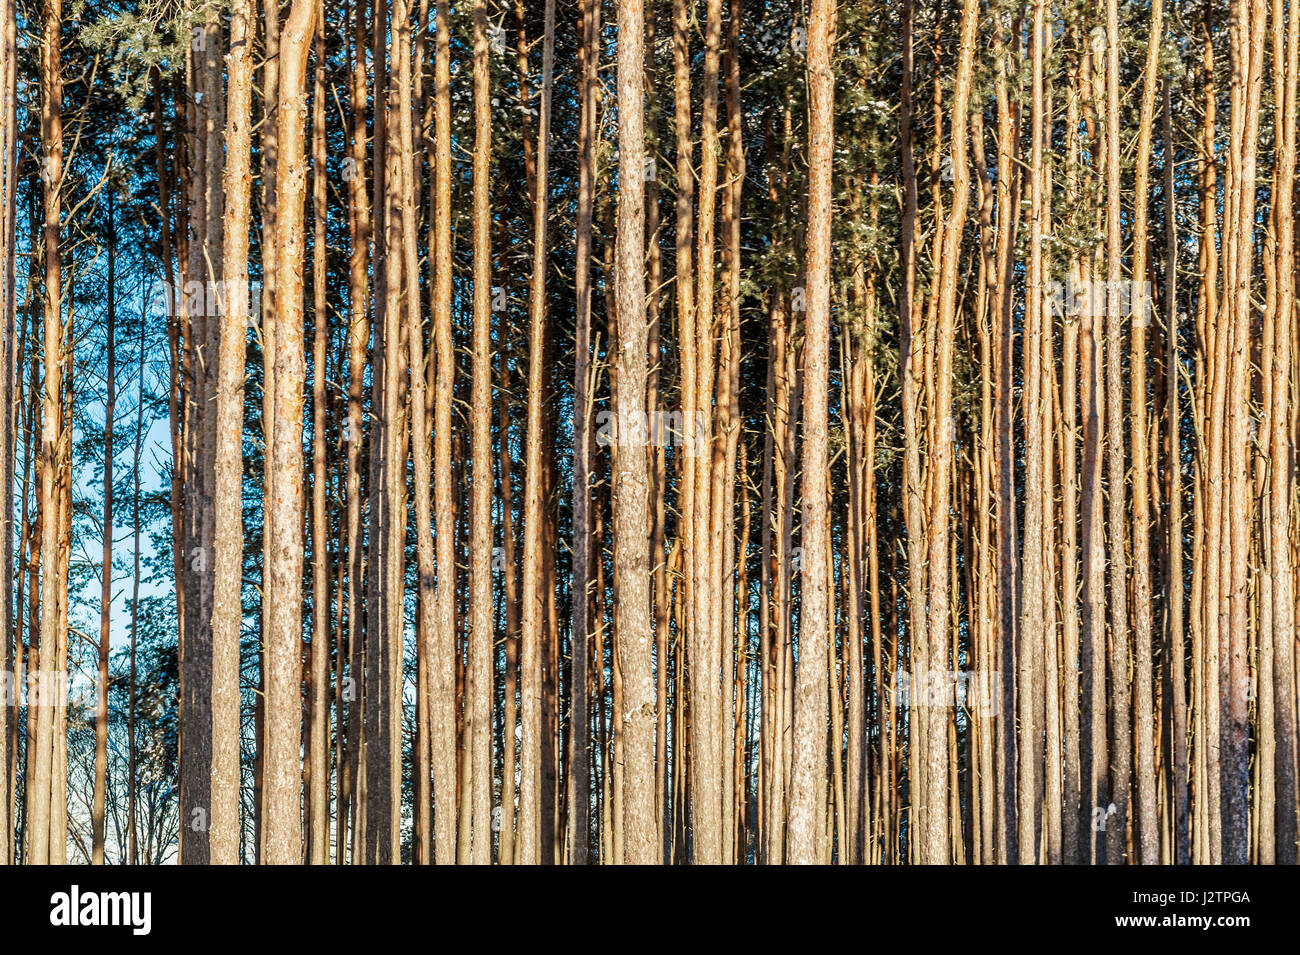 Coniferous forest background of trunks of long smooth trees - Stock Image